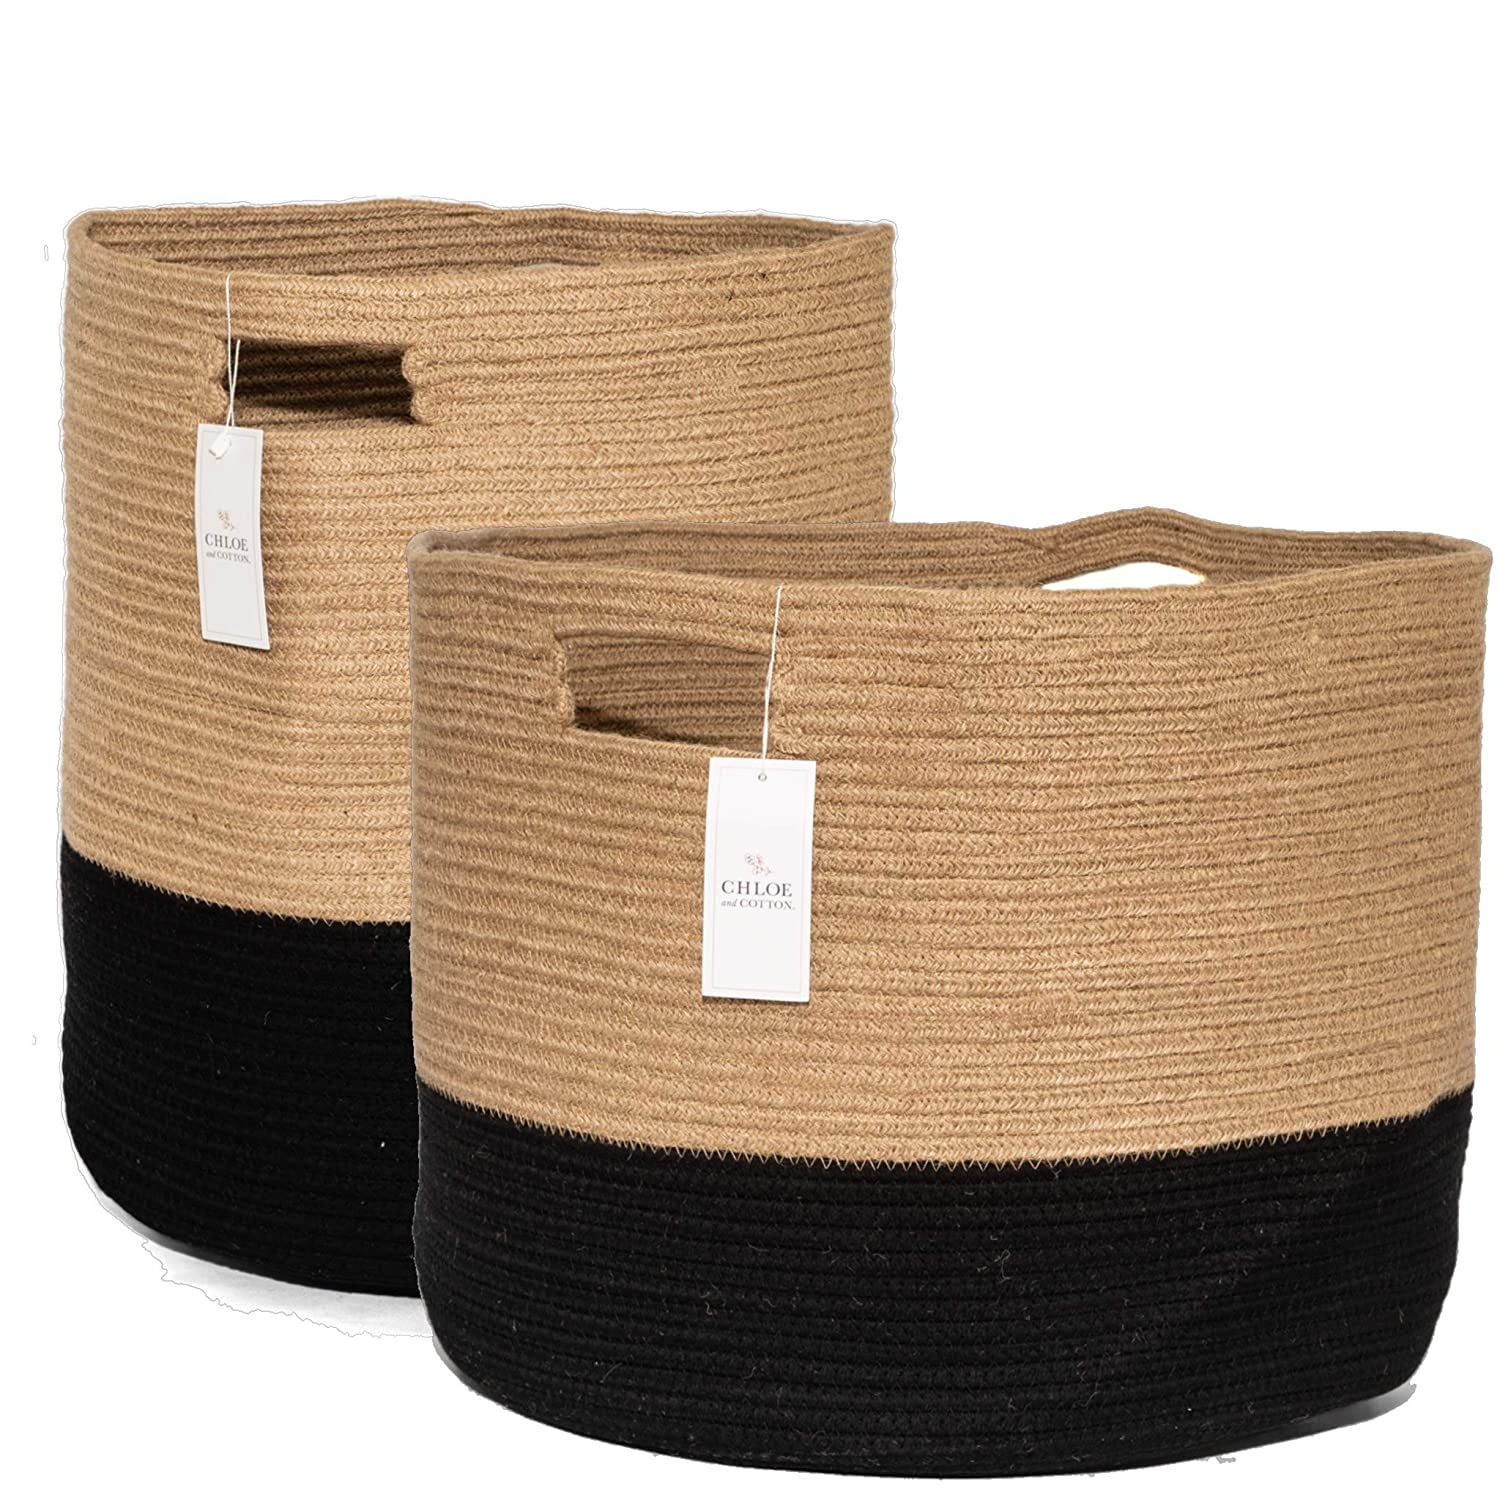 Chloe and Cotton Woven Coiled Rope Storage Baskets XL 19 x 16 inch and XXXL 15 x 21 Jute Black Handles | Decorative Laundry Clothes Hamper, Blanket, Towel, Baby Nursery Bin Cute Organizer